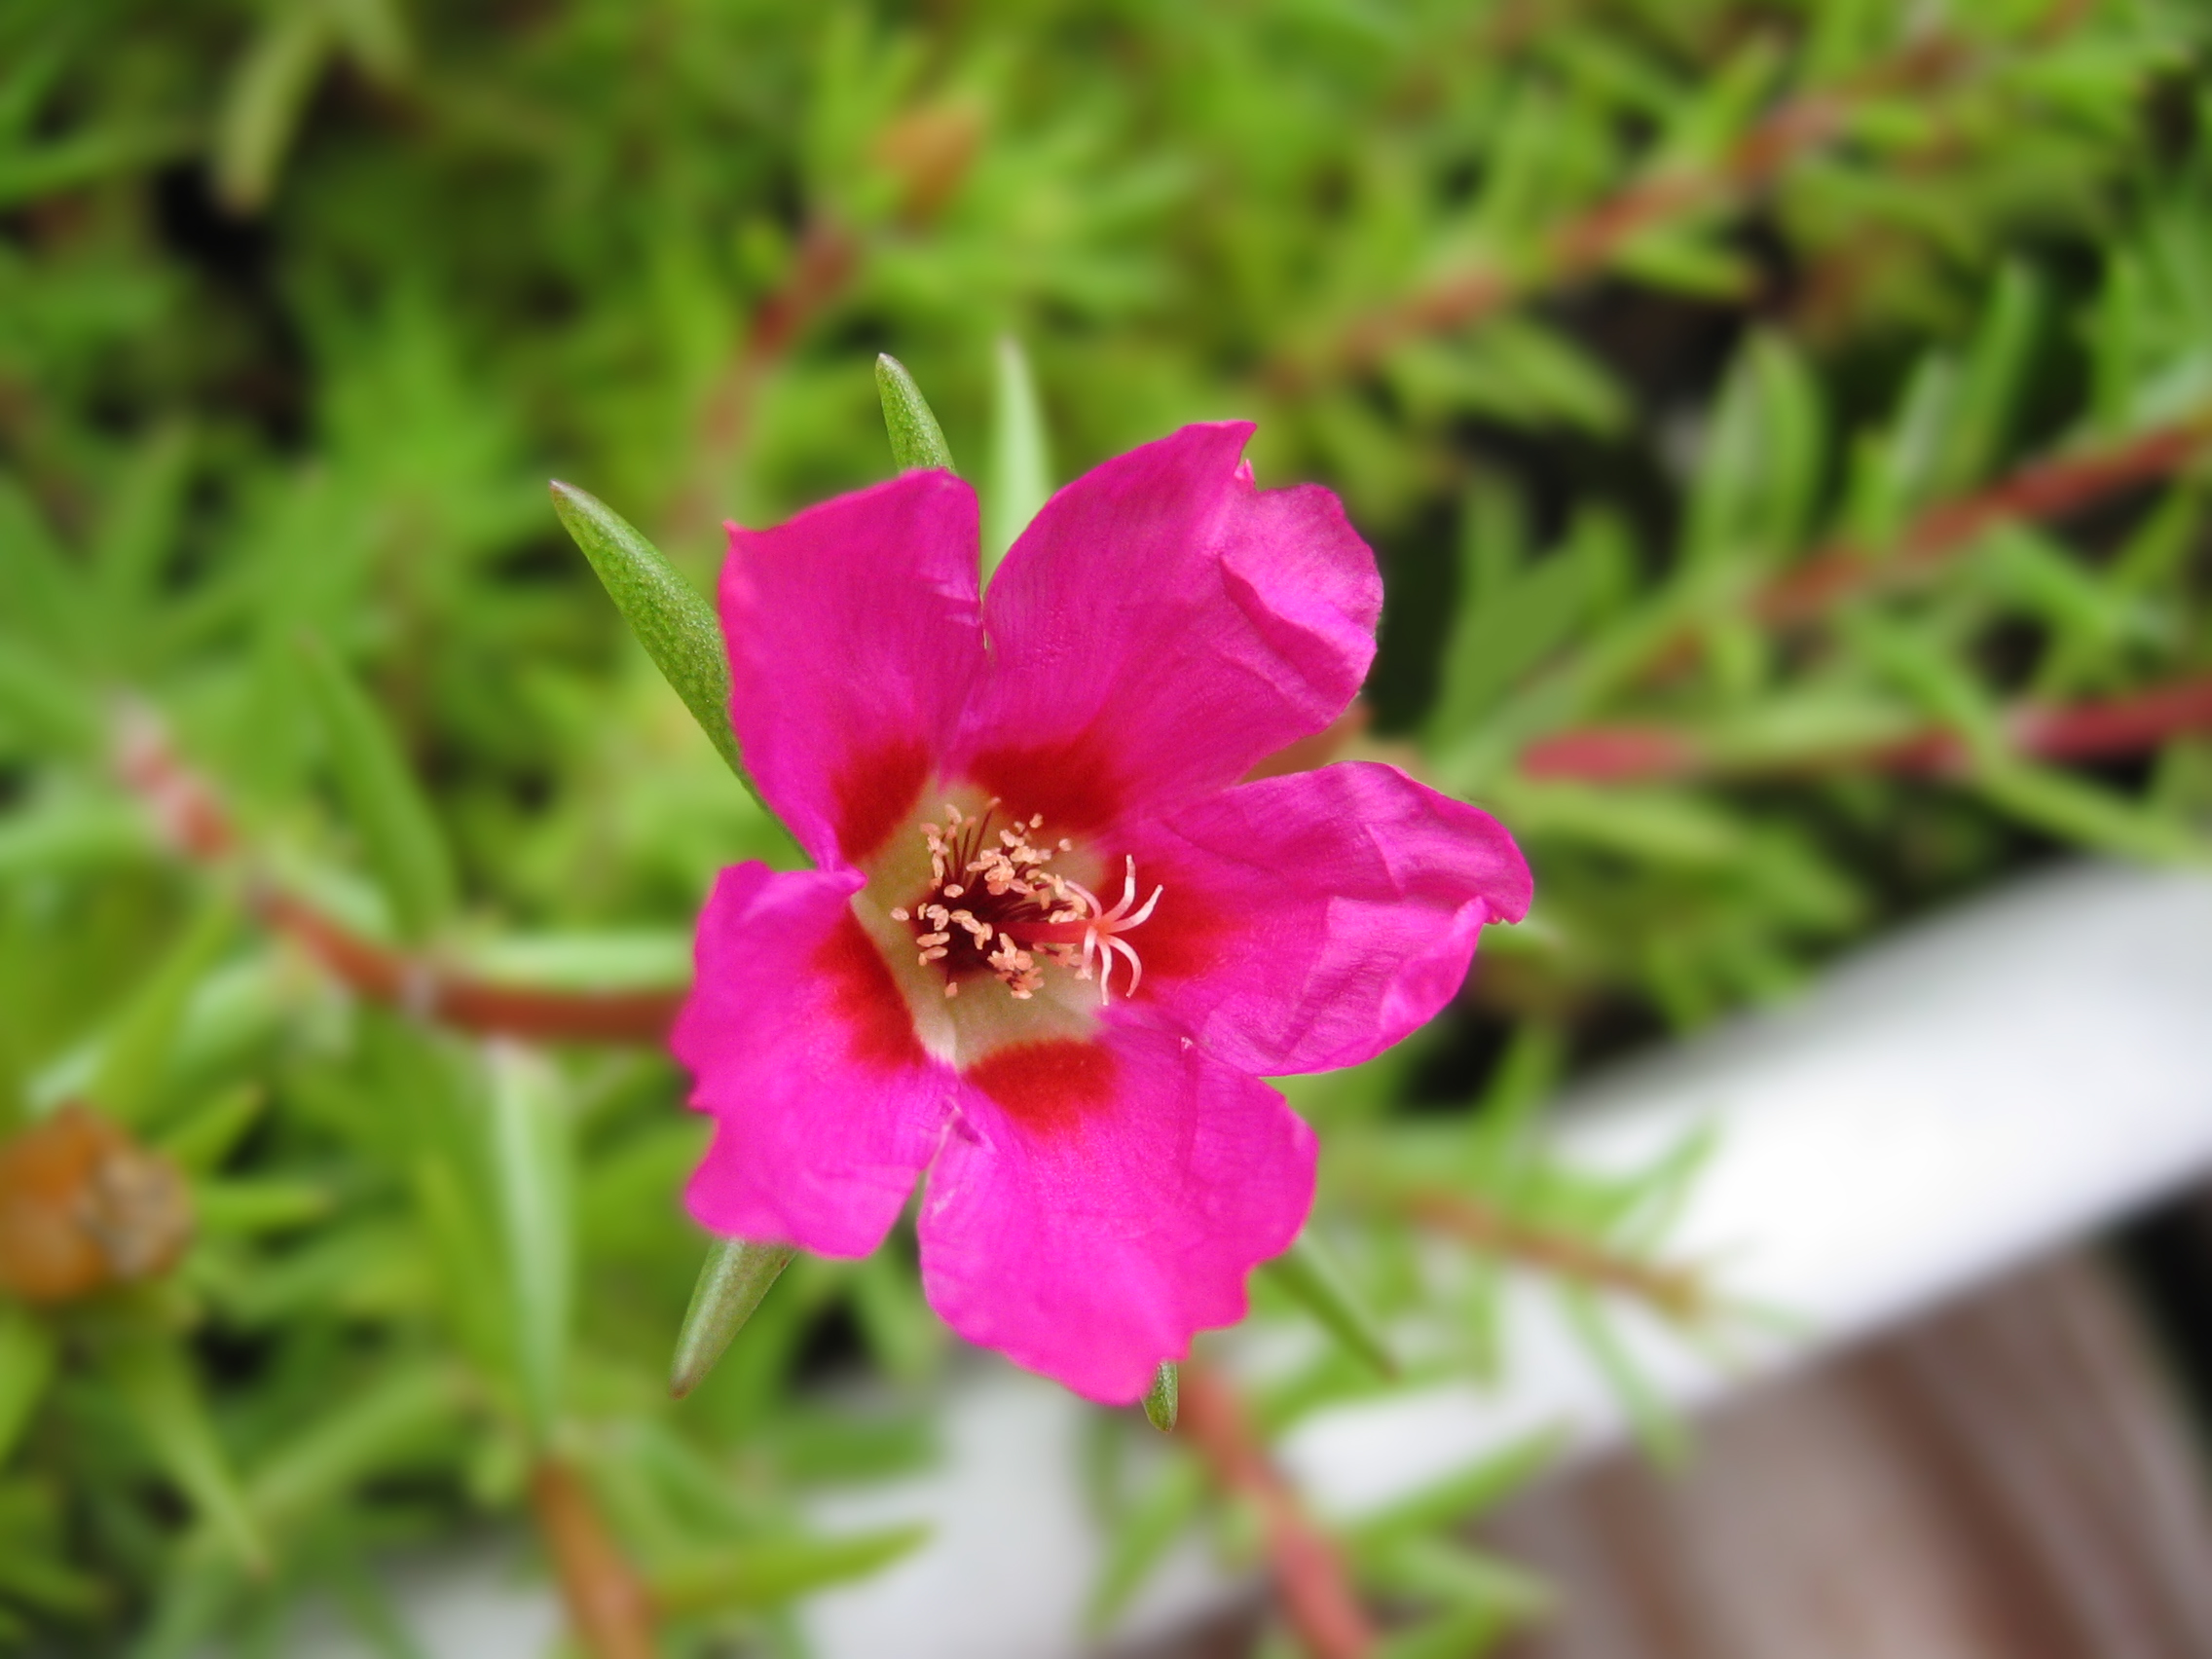 http://upload.wikimedia.org/wikipedia/commons/b/b9/Portulaca_grandiflora_flower.jpg